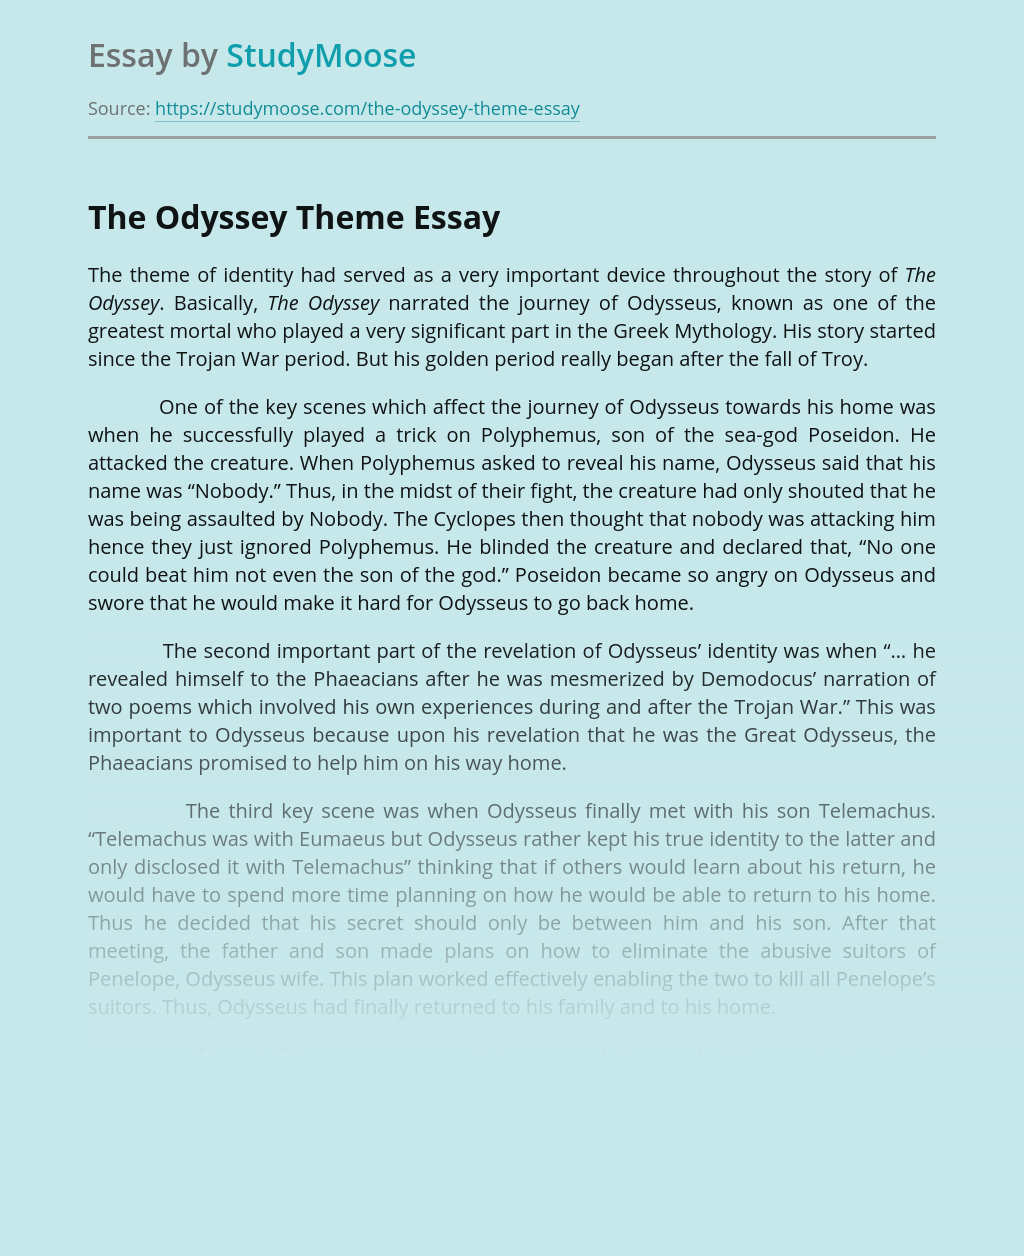 The Odyssey Theme